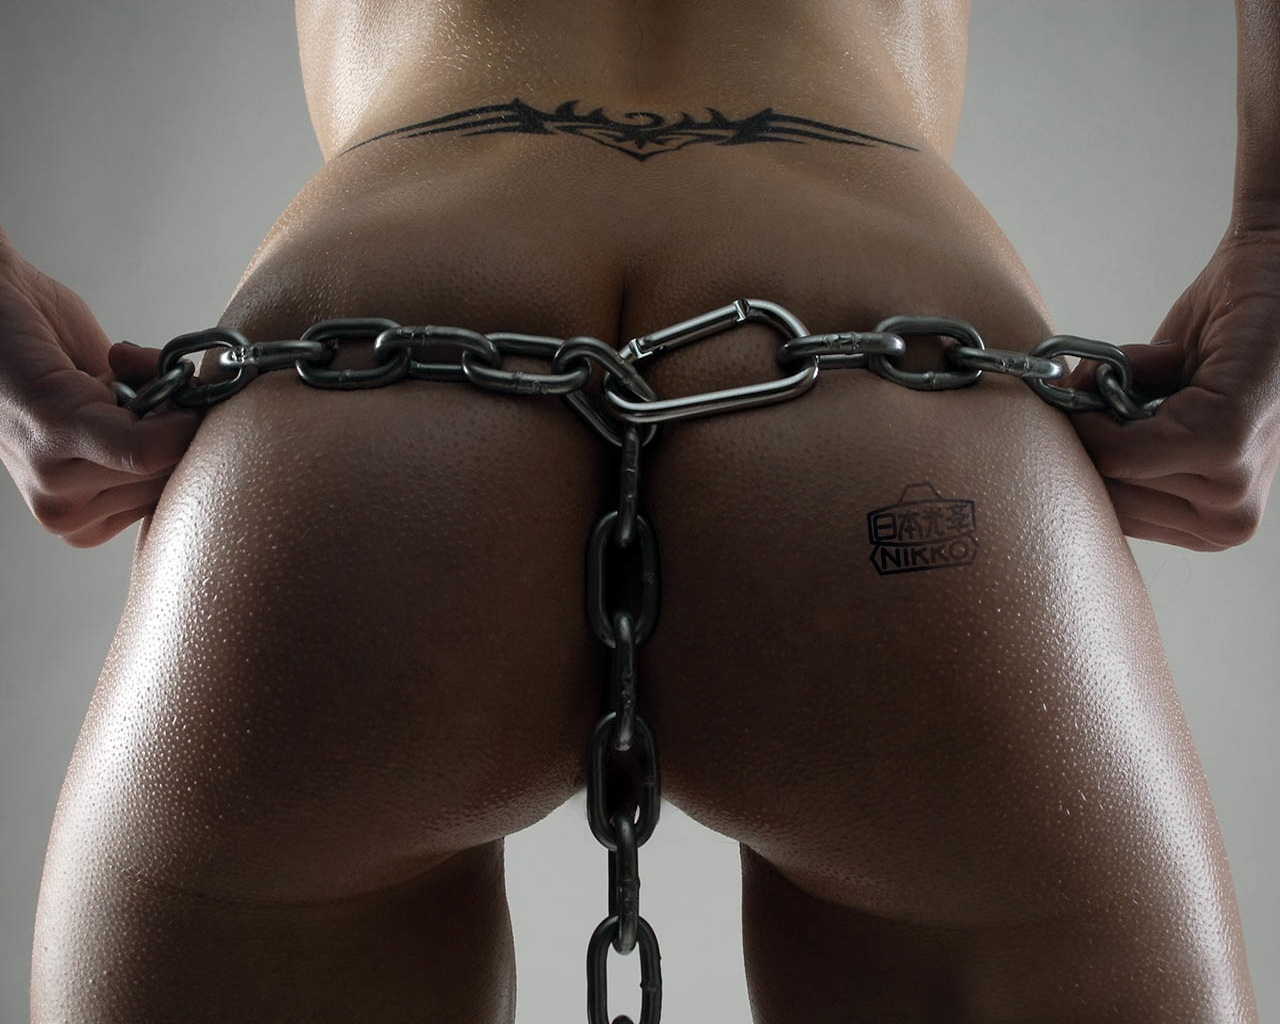 Фото Chain on buttocks, tattoo, wet ass, gray background, ass glitters, скачать картинку бесплатно